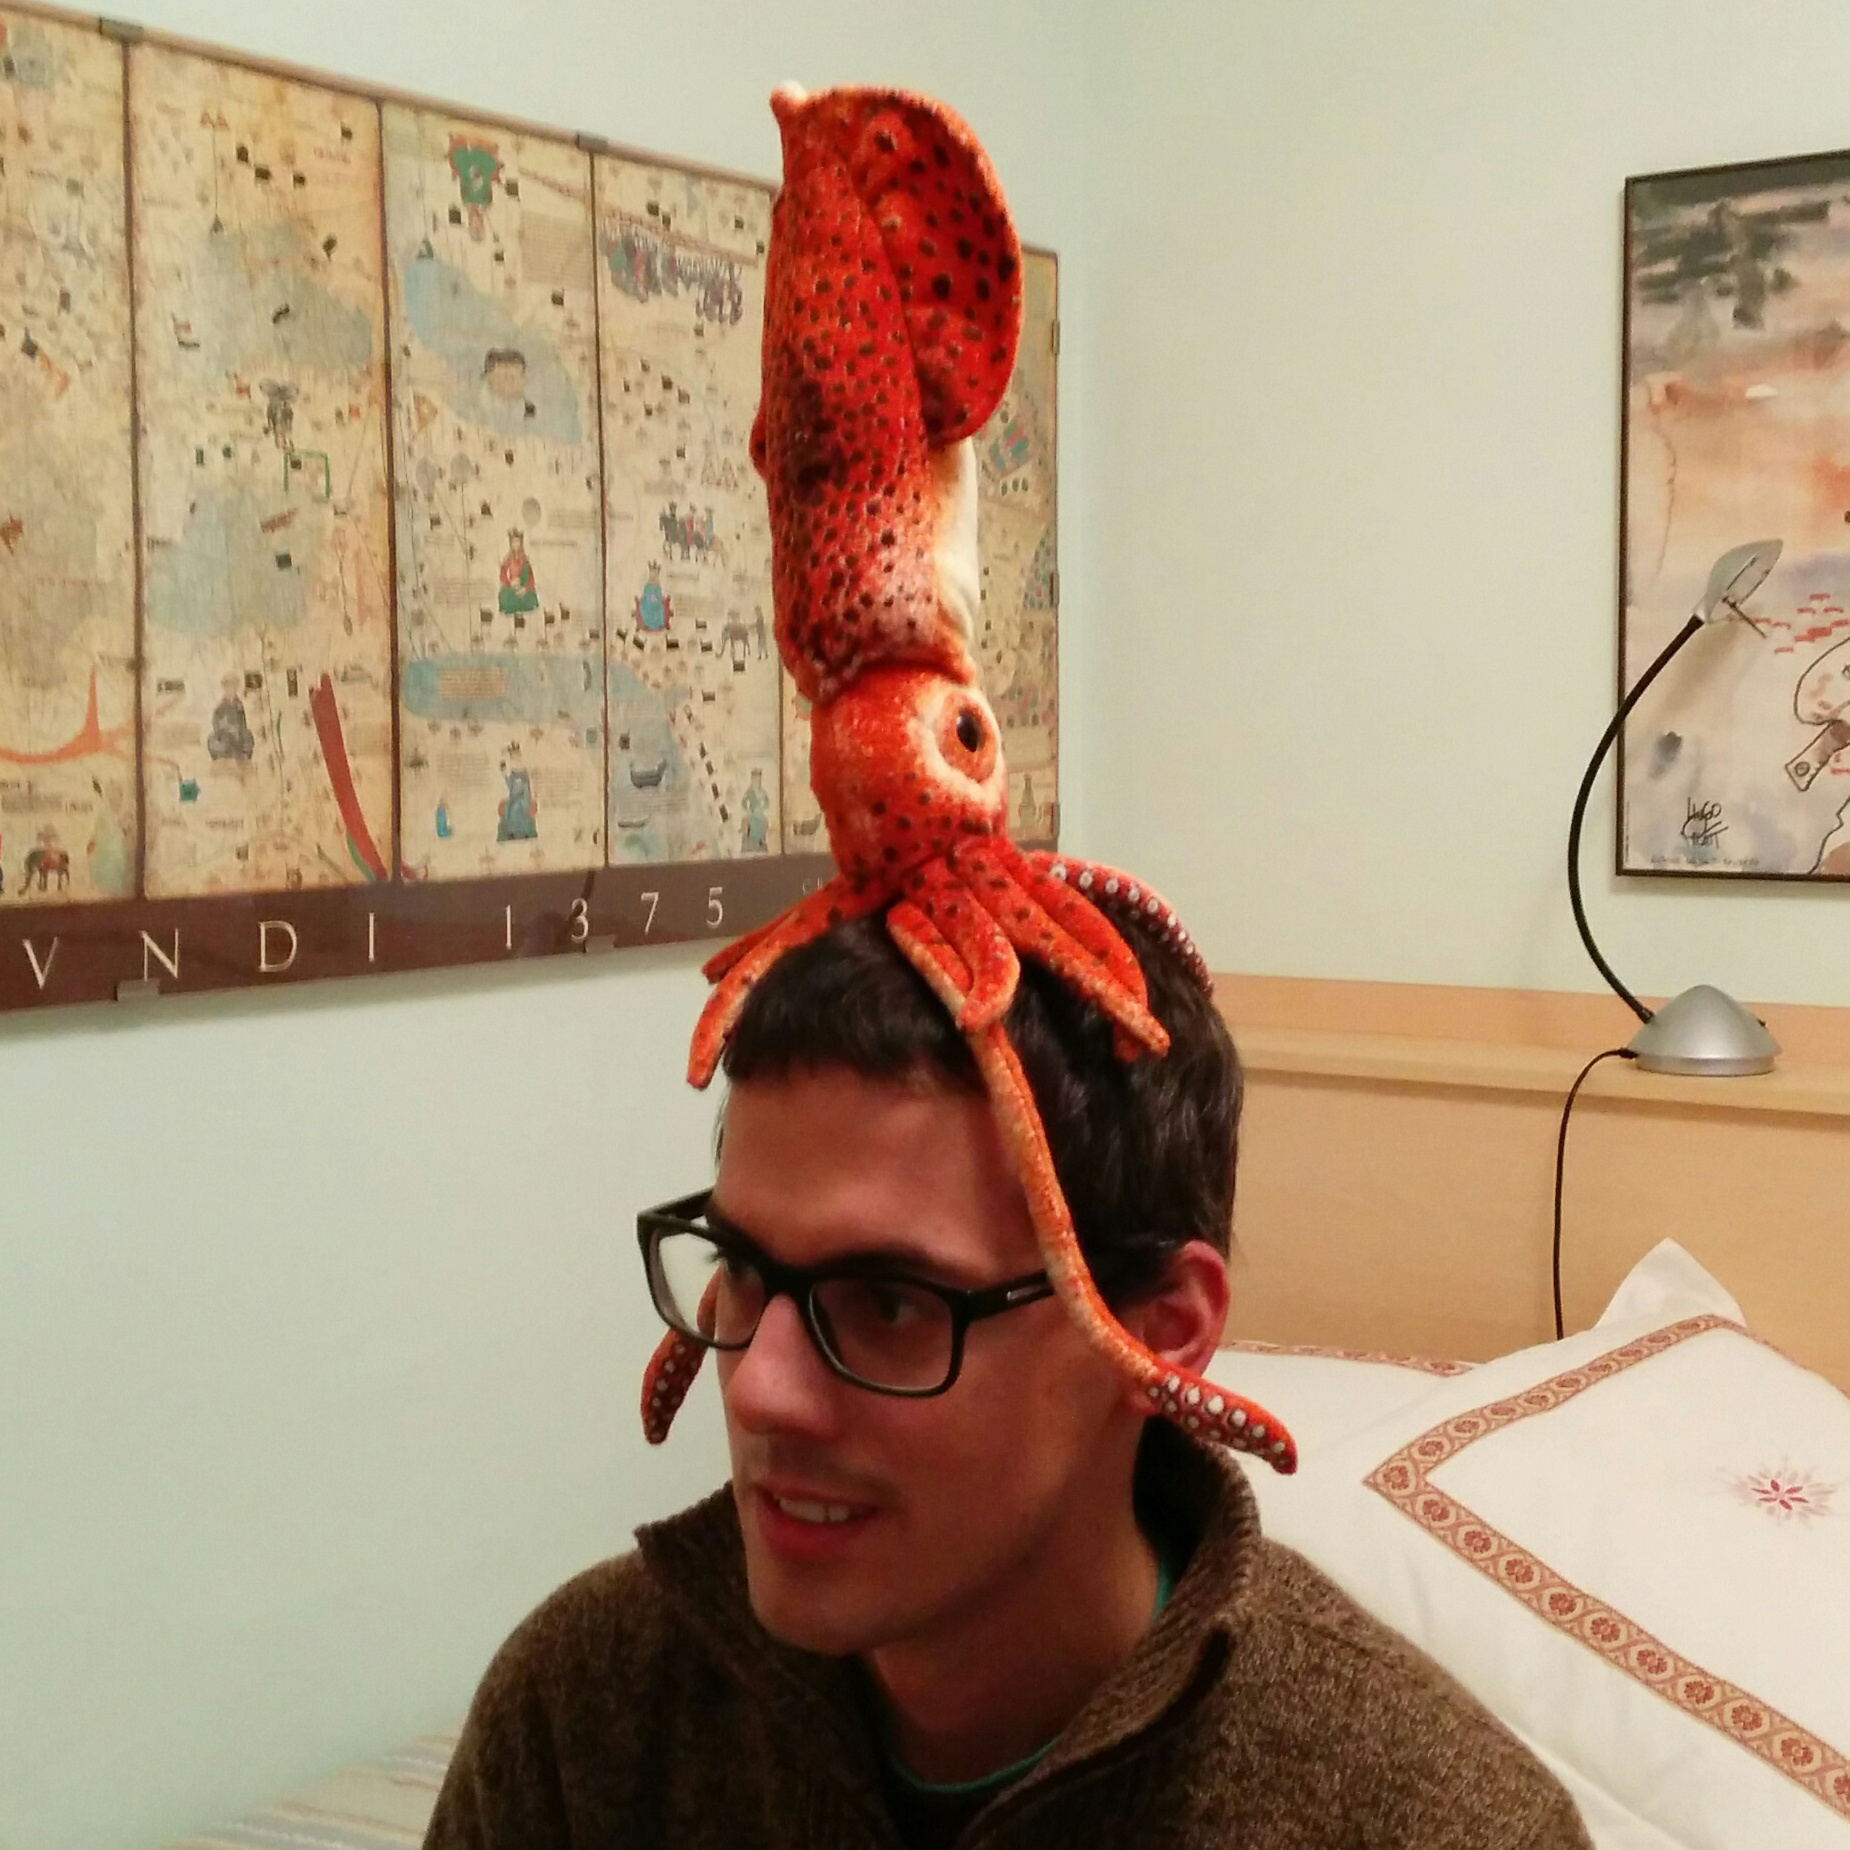 Me with a squid on my head